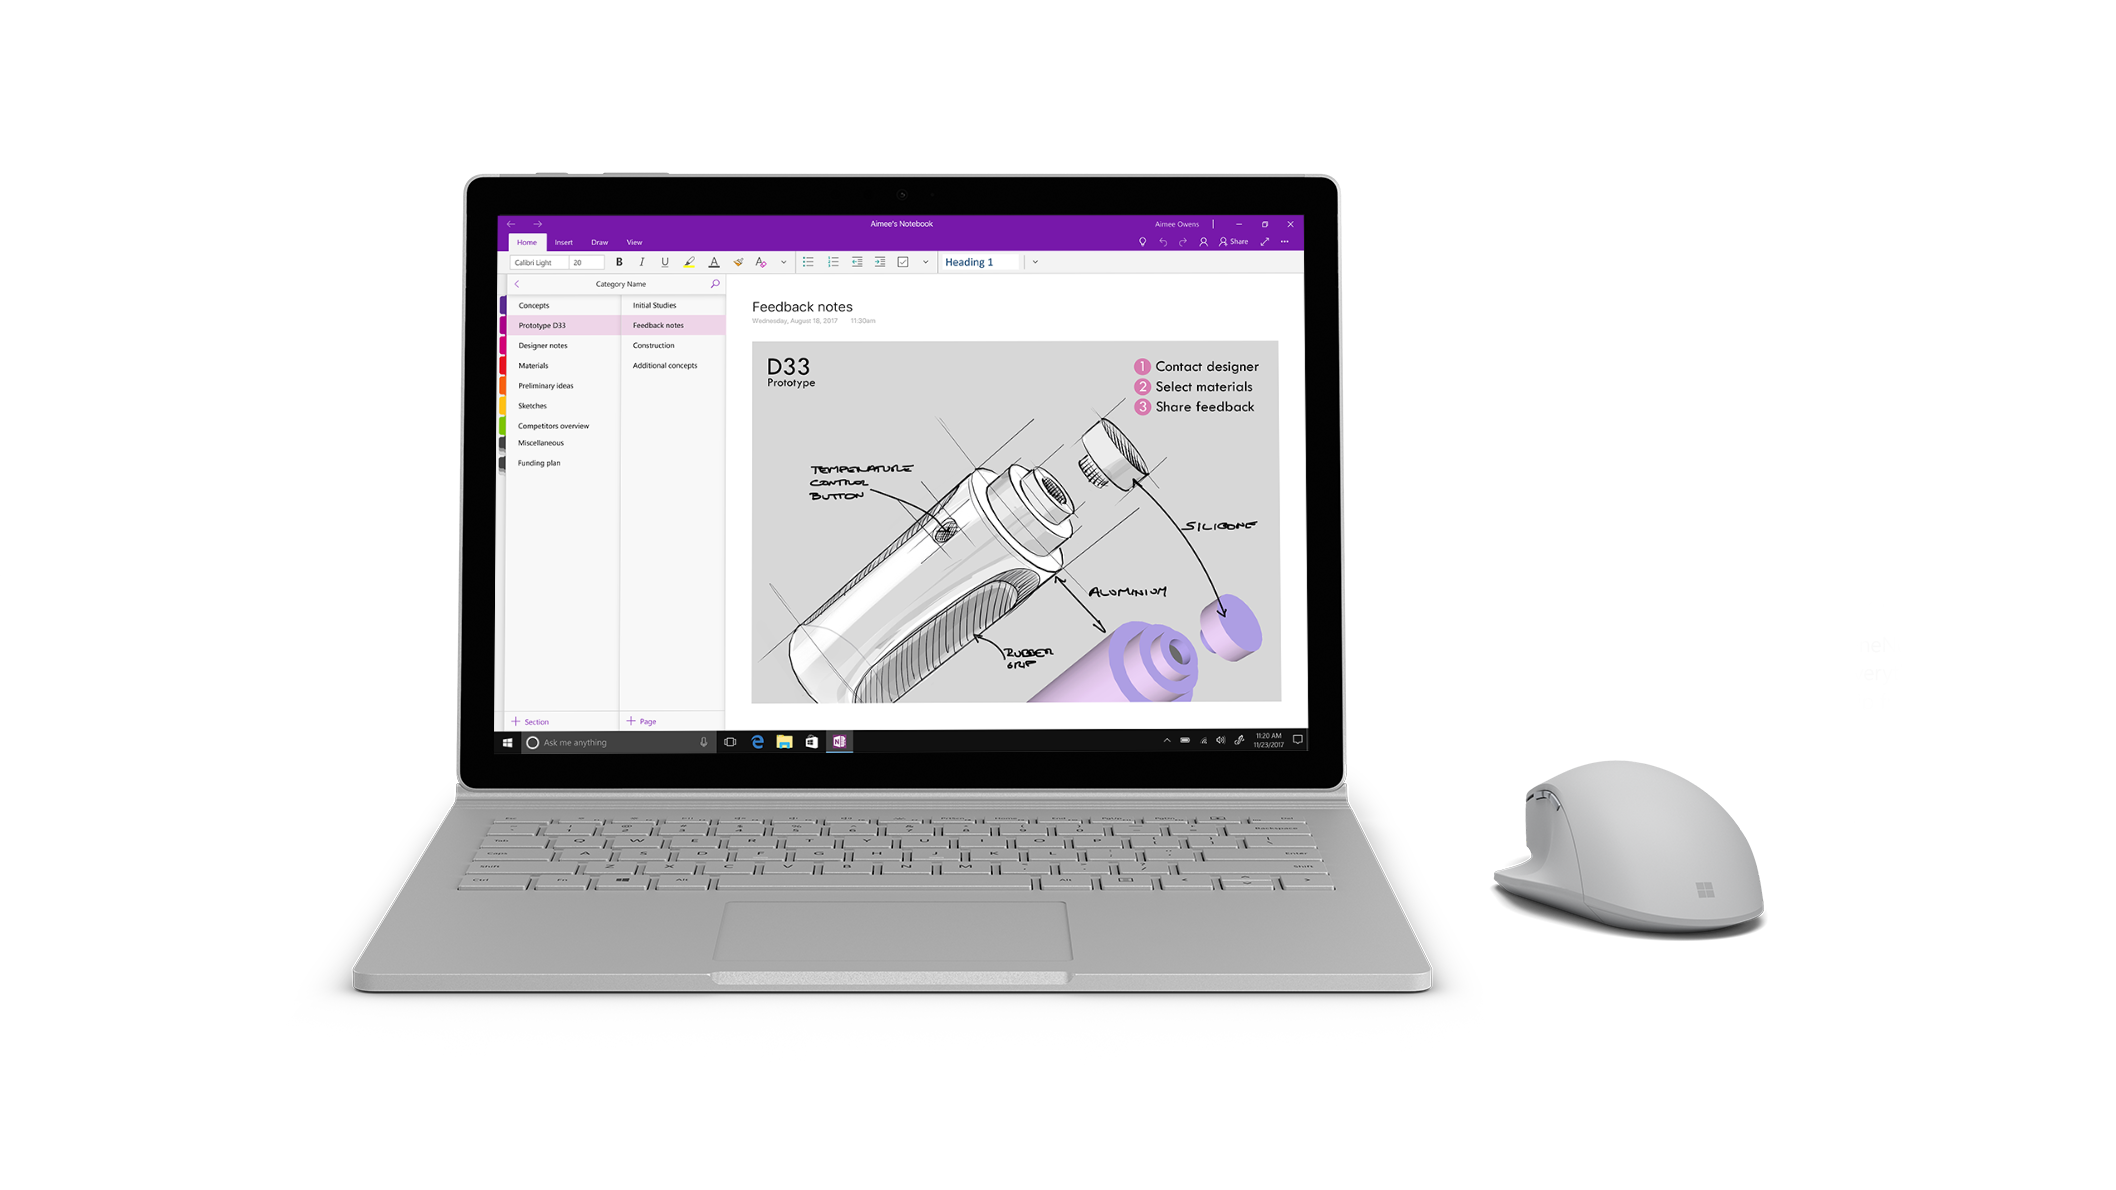 Surface Precision Mouse next to a Surface Book 2 running OneNote